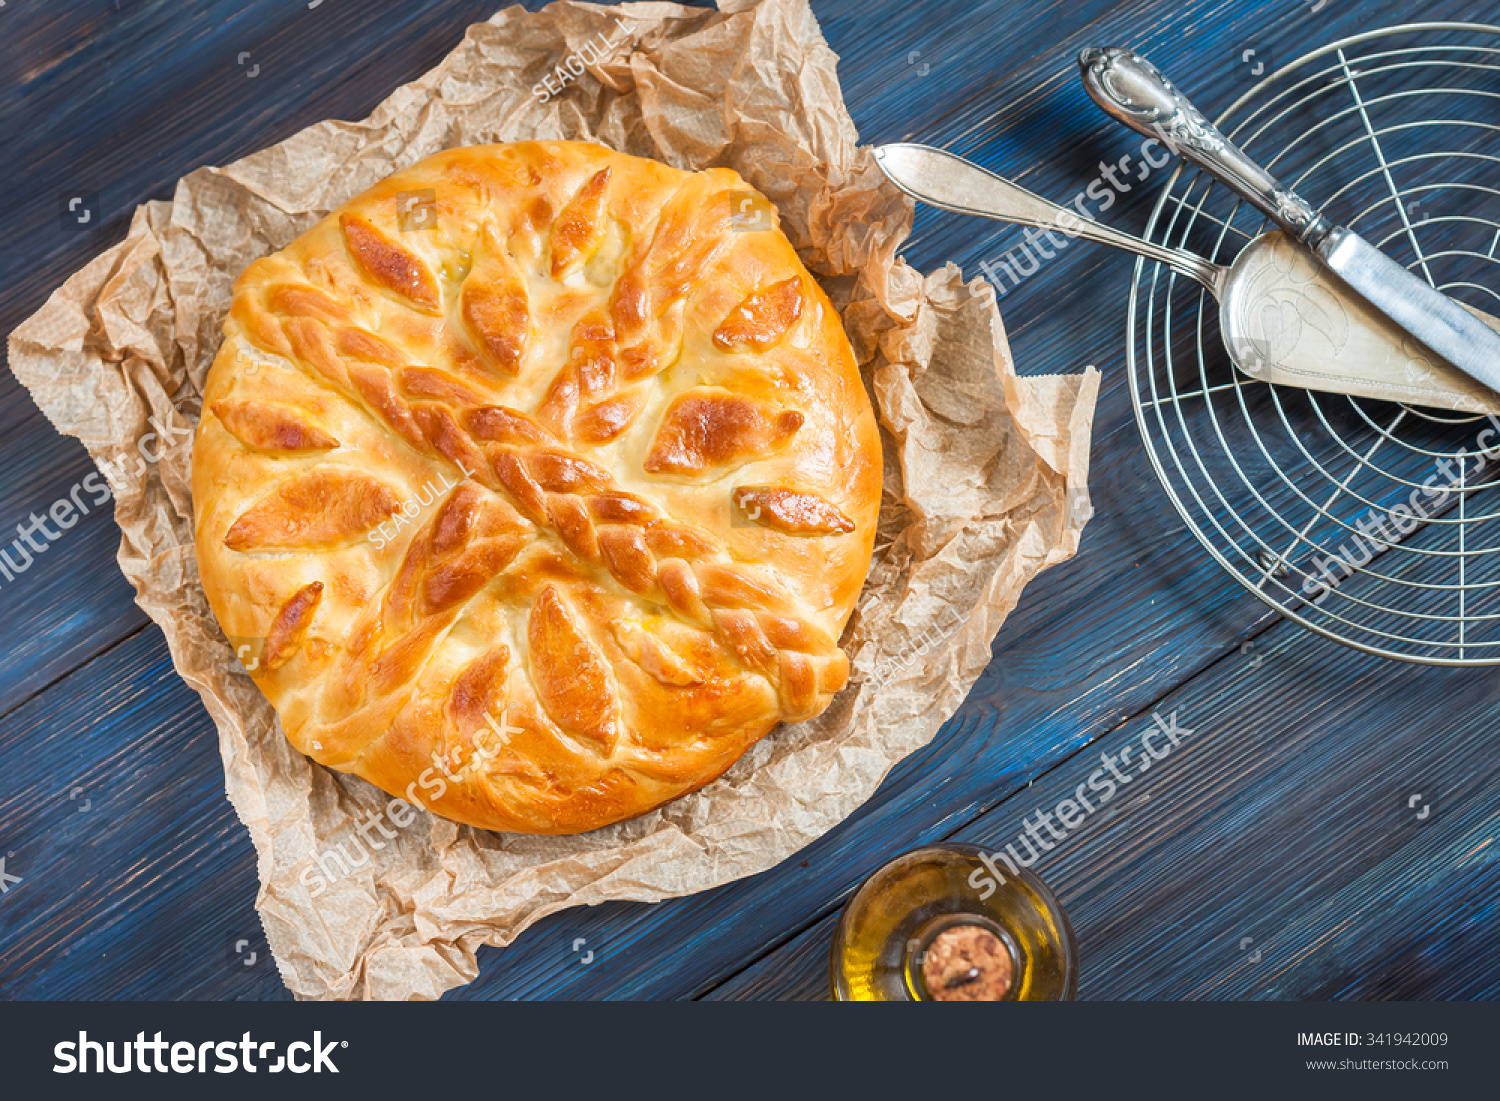 Recipe for pie with cabbage from yeast dough in the oven 18